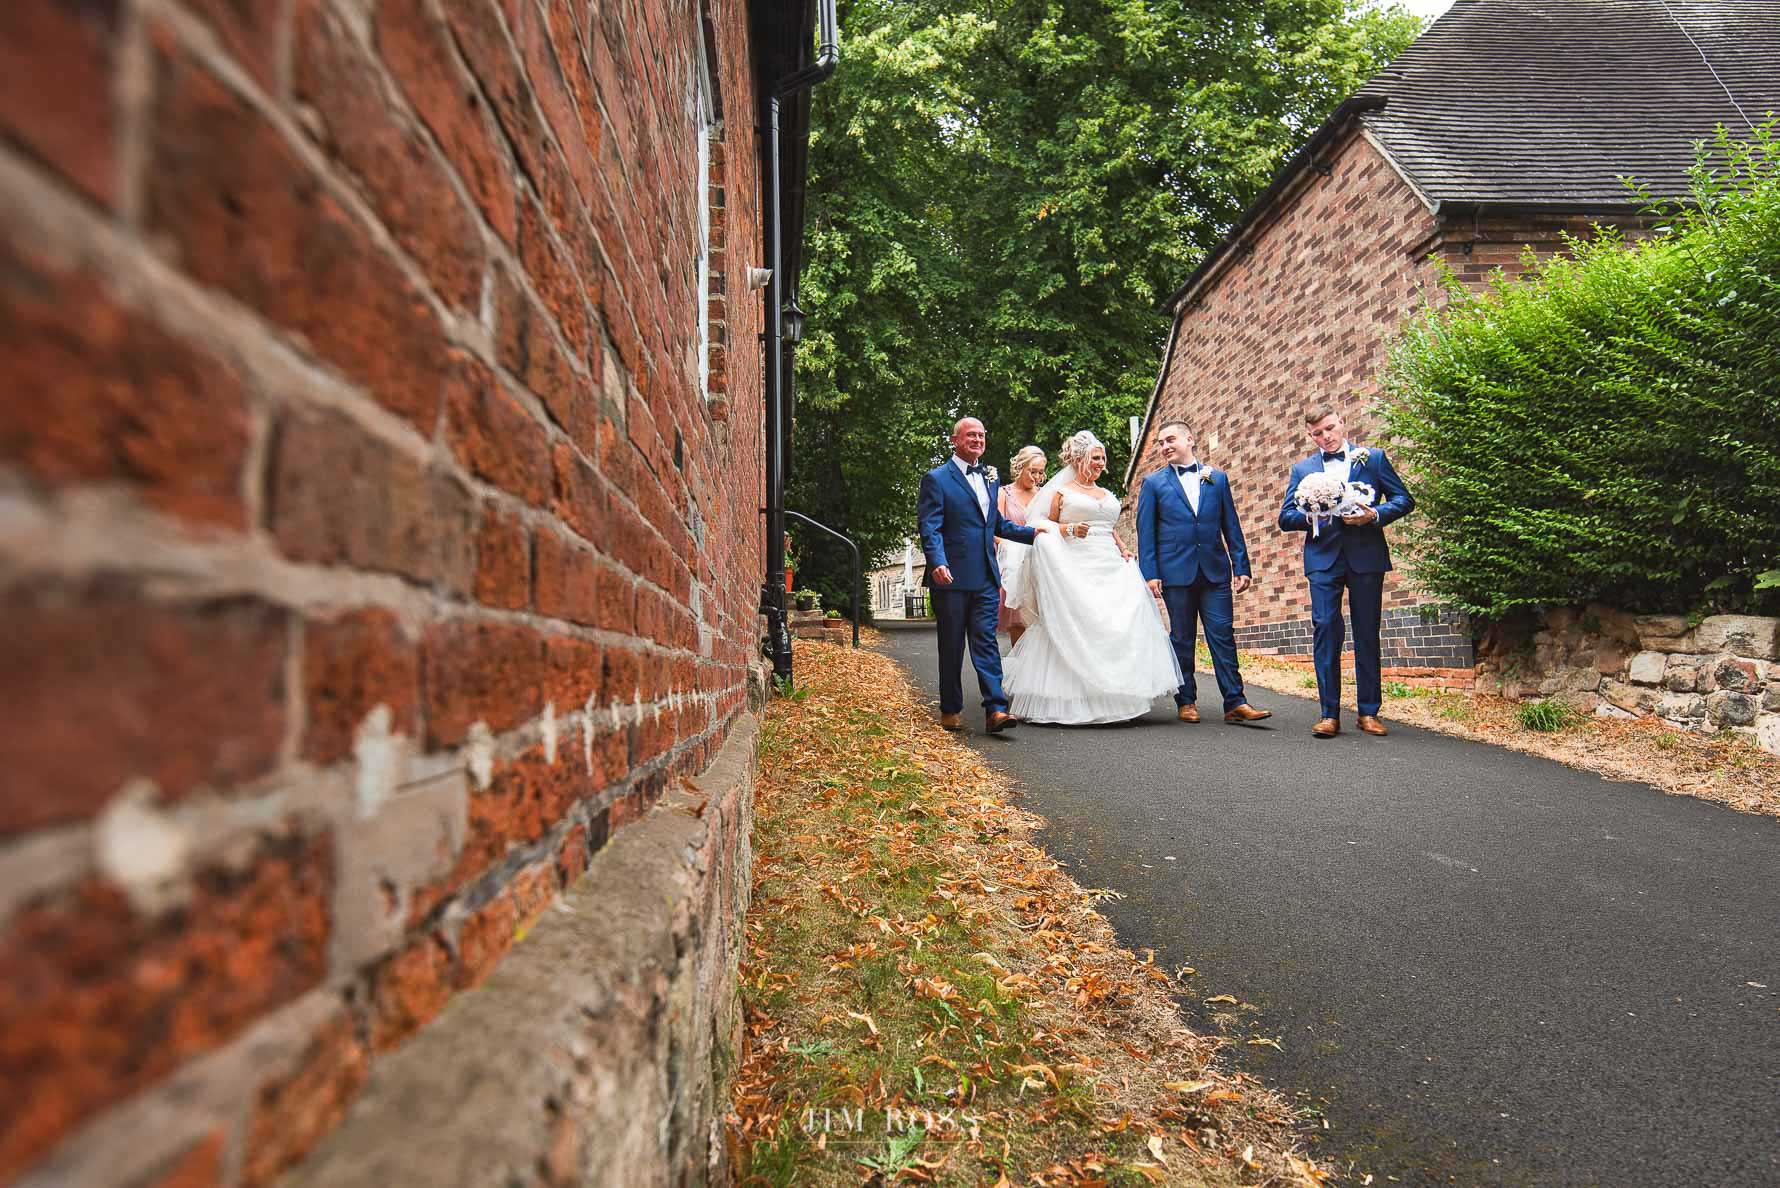 Newlyweds walk to the car